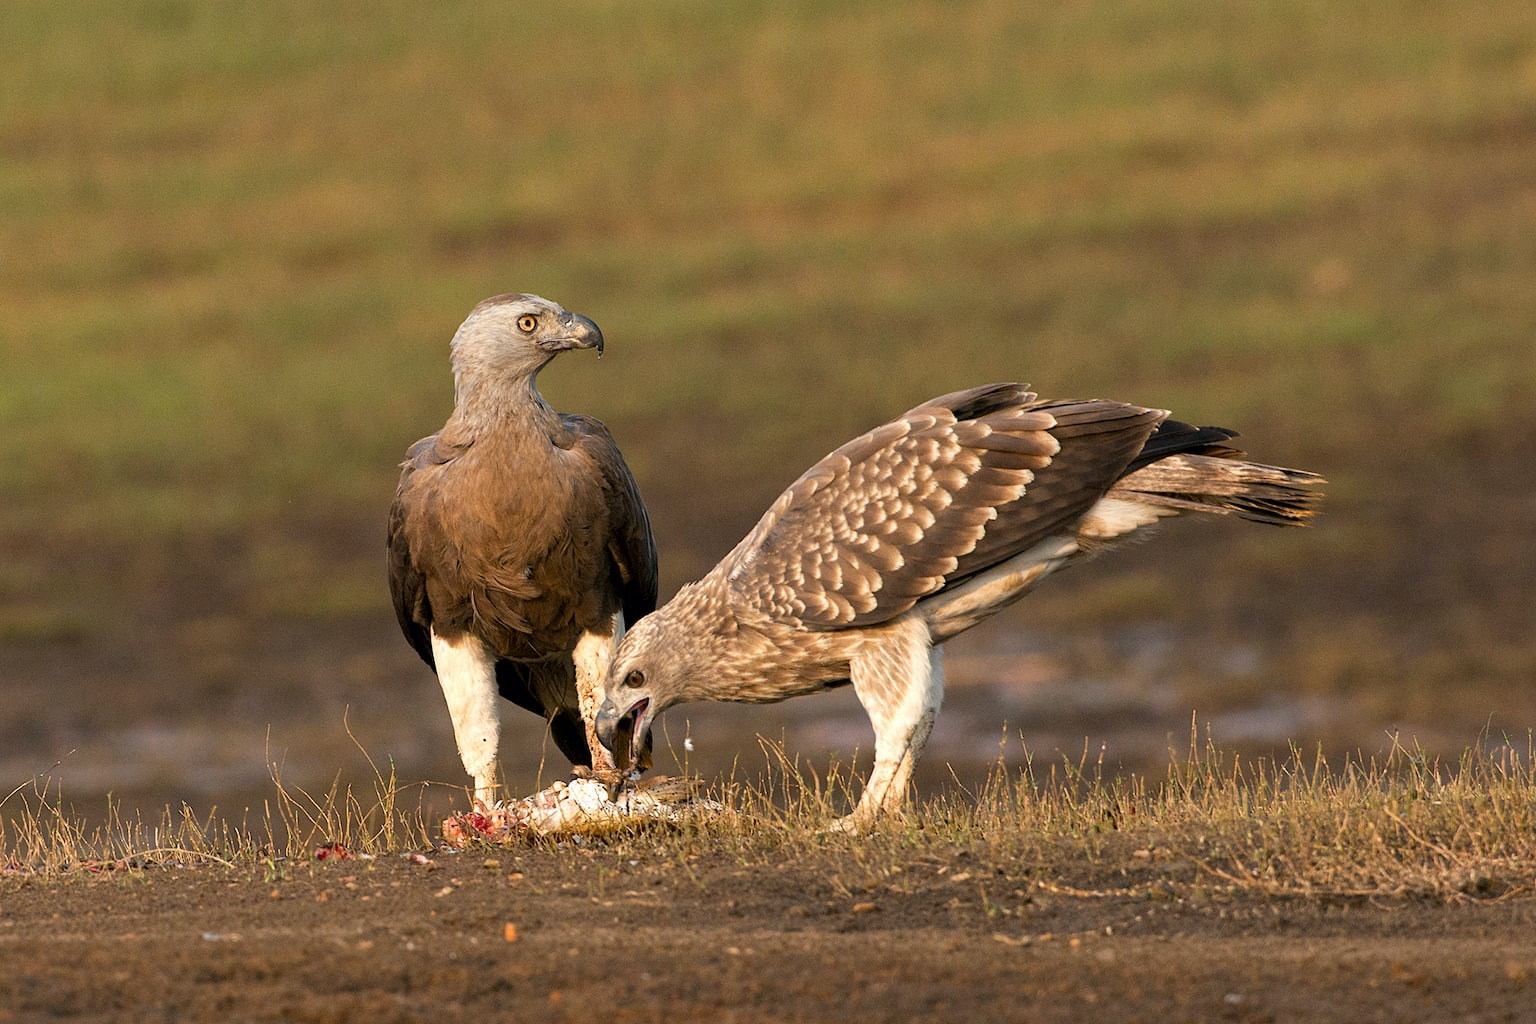 (Top) The lesser fish-eagle (Haliaeetus humilis) is amongst the smallest of the sea/fish-eagles of the genus Haliaeetus and is resident in southwest India and the Himalayas. Both this eagle and the grey-headed fish-eagle (Haliaeetus ichthyaetus) have recurved talons and prickly soles that help them with their largely piscivorous (fish-eating) lifestyle. (Above) Grey-headed fish-eagles are widely distributed across southwest, central-north and eastern India. The black-and-white bands on their tails distinguish them from the lesser fish-eagles' all-black tail.